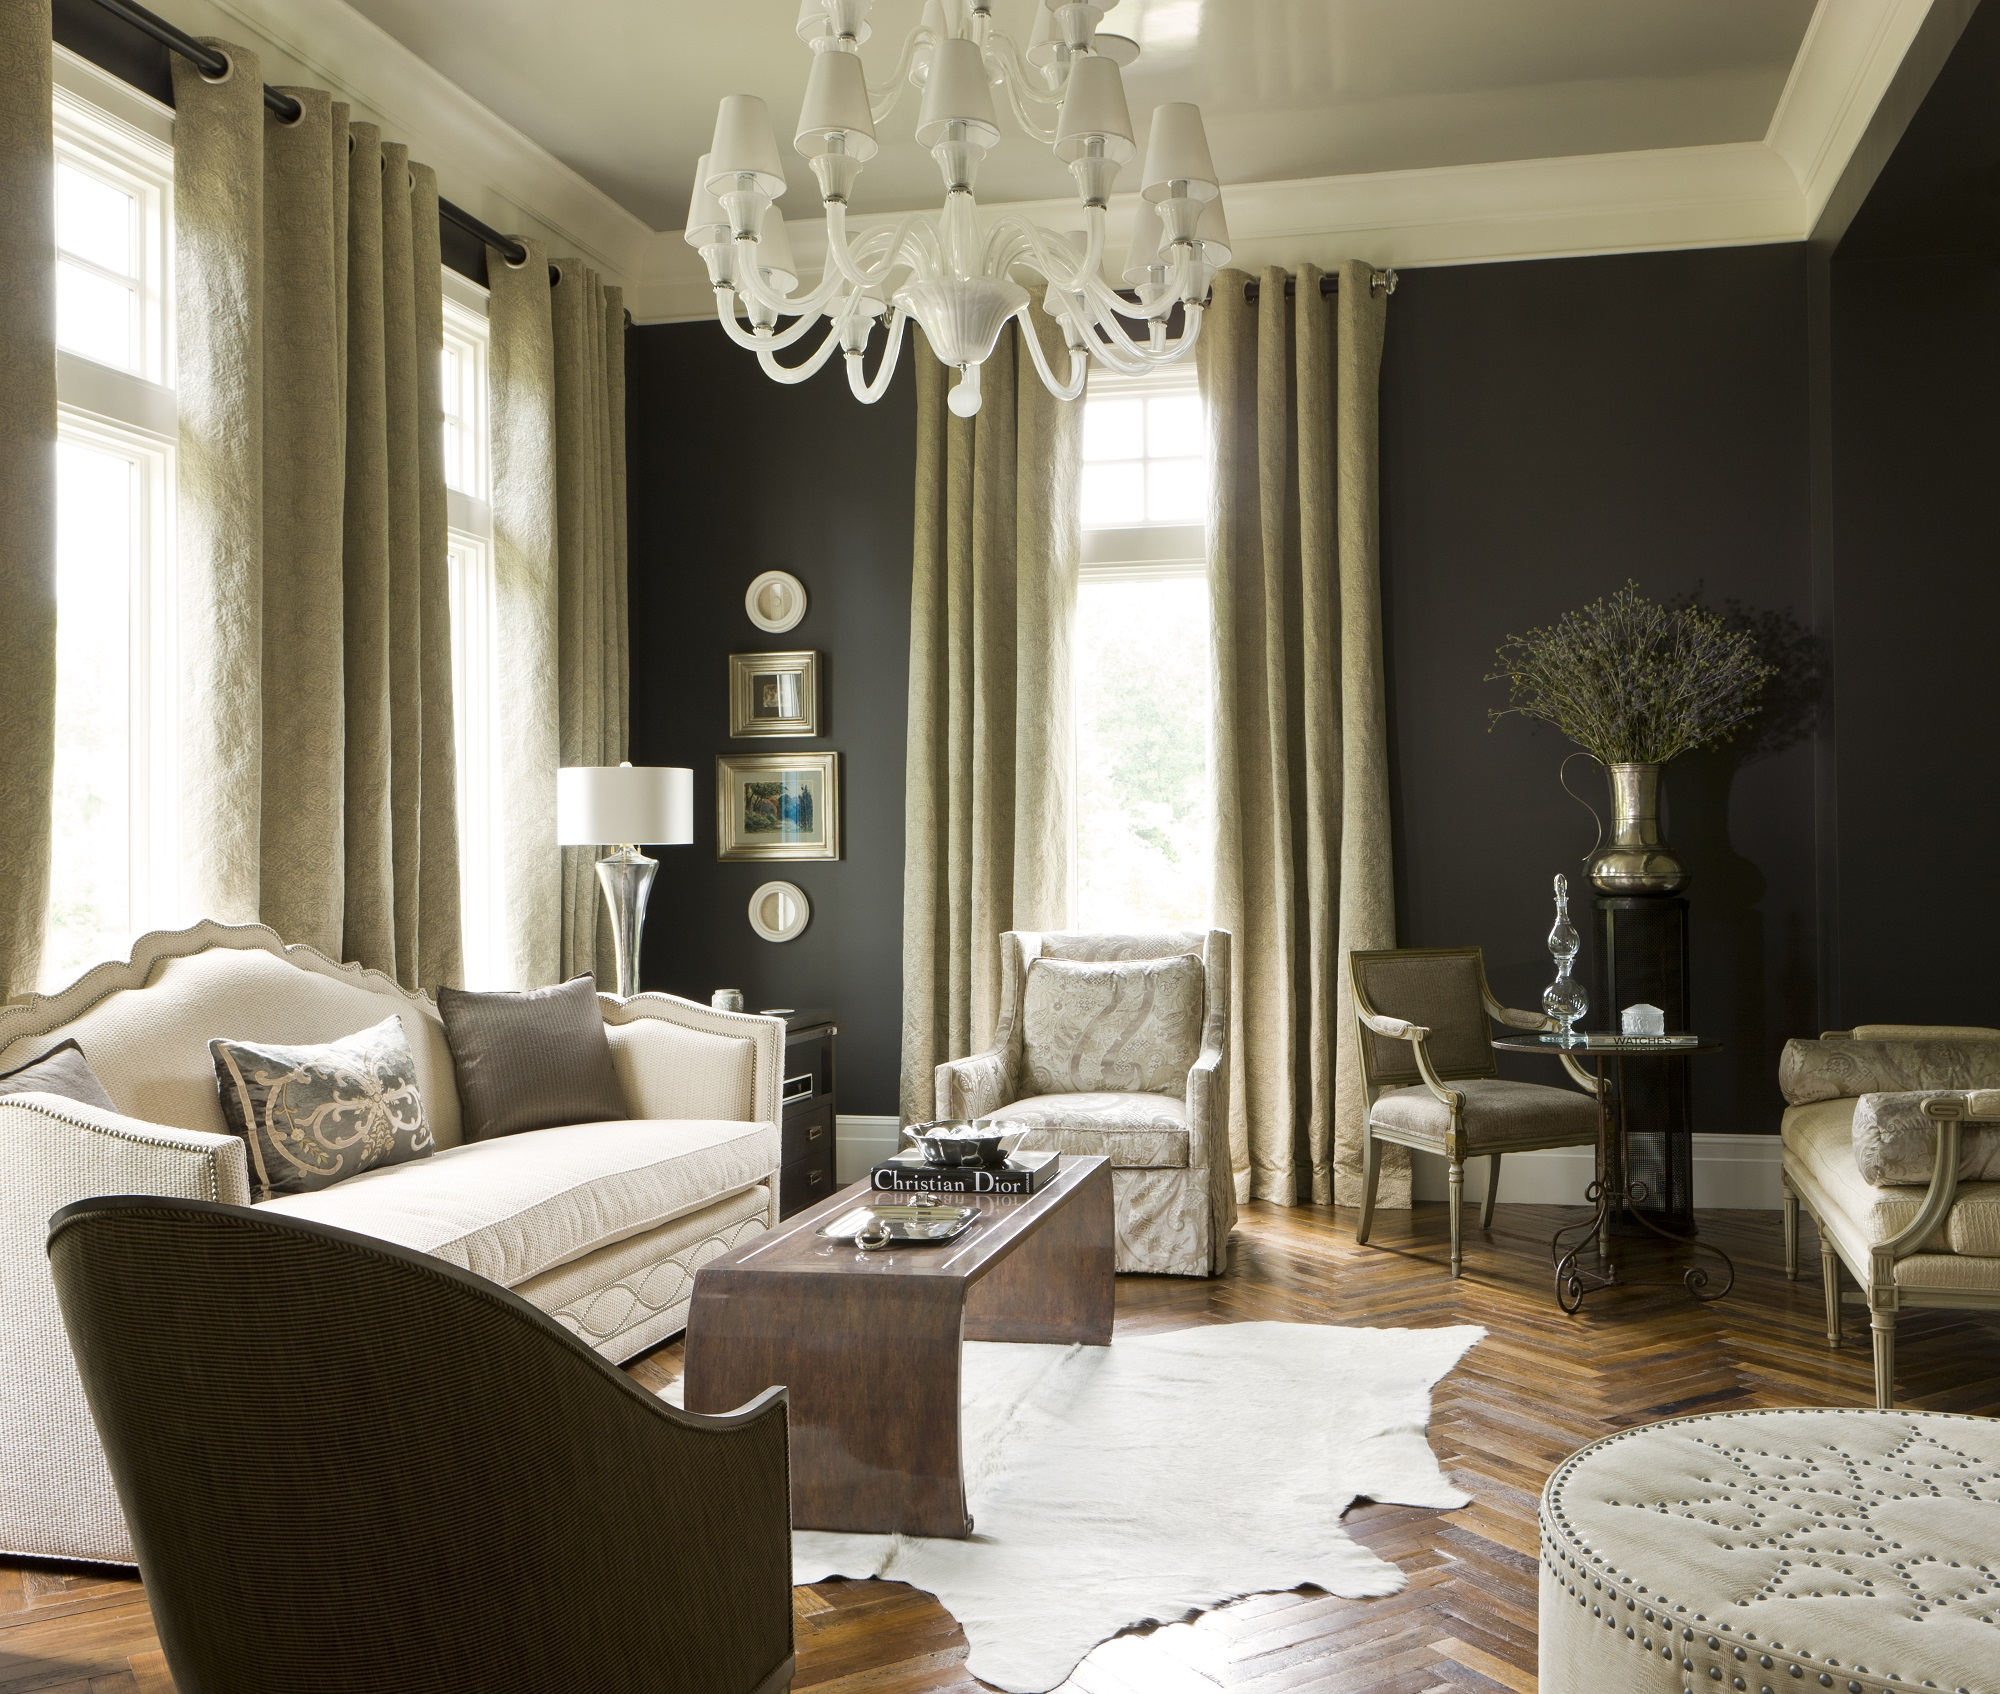 Patrick-Sutton-Associates-Interior-Design-Maryland